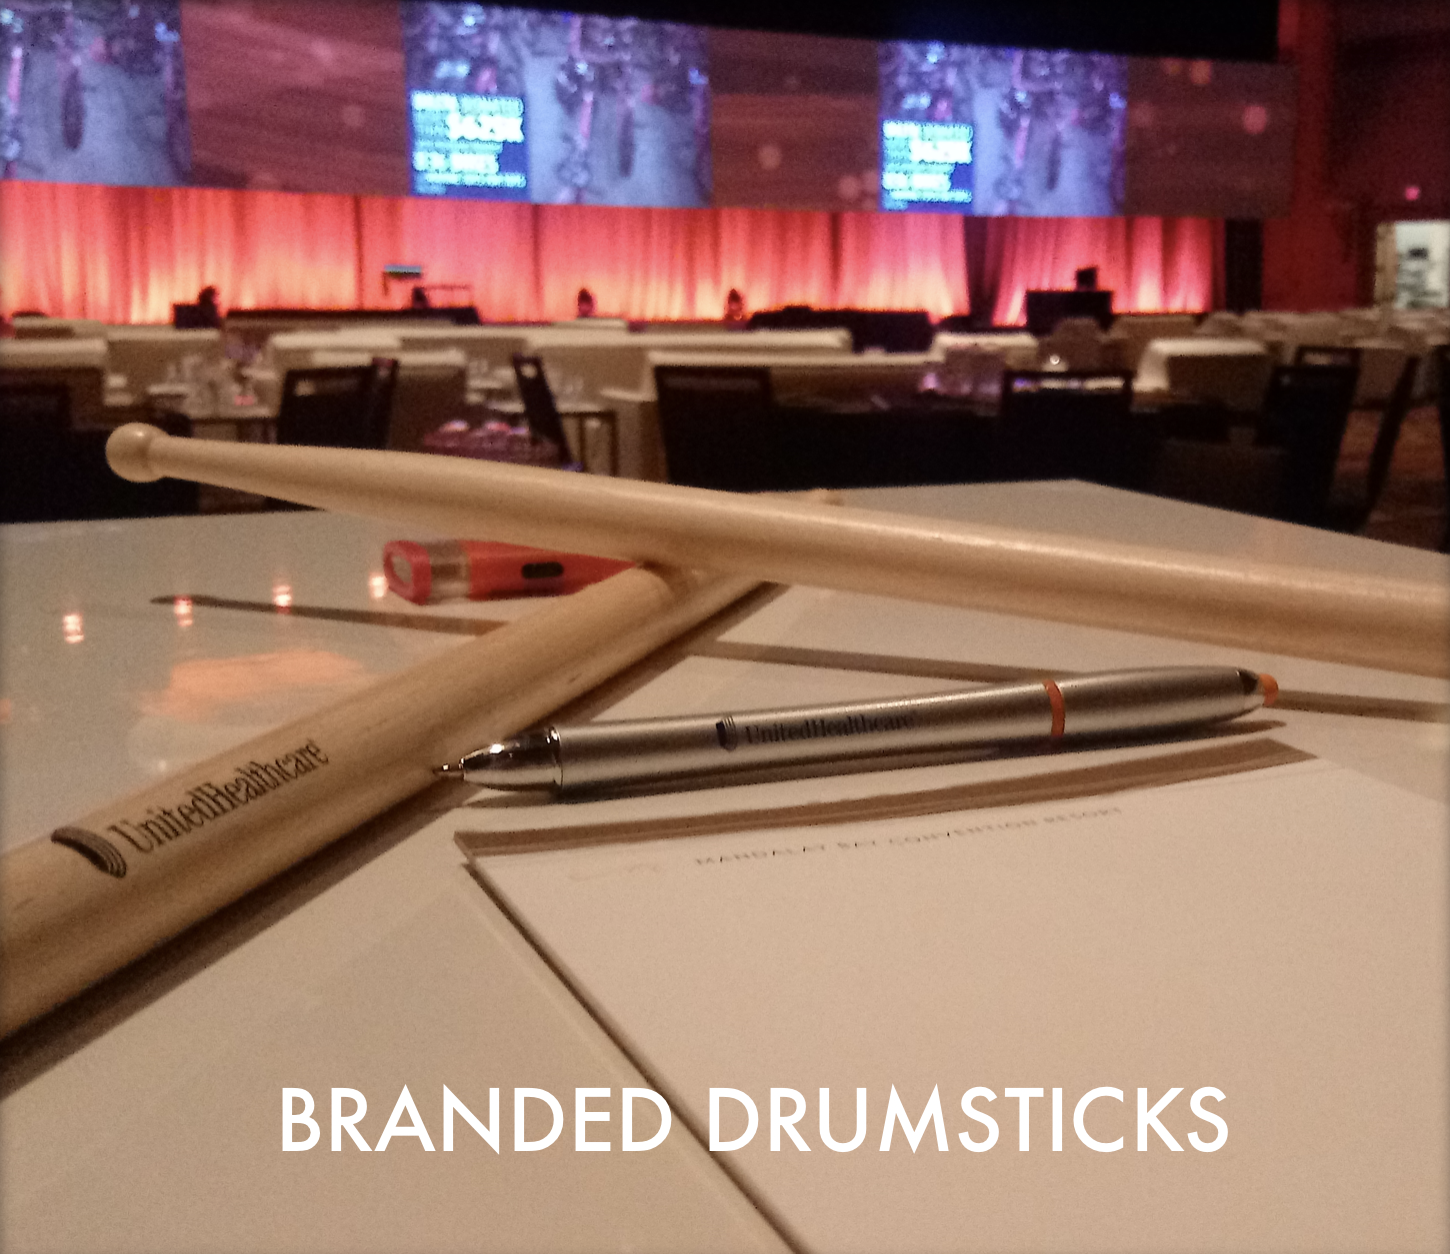 Branded Drumsticks